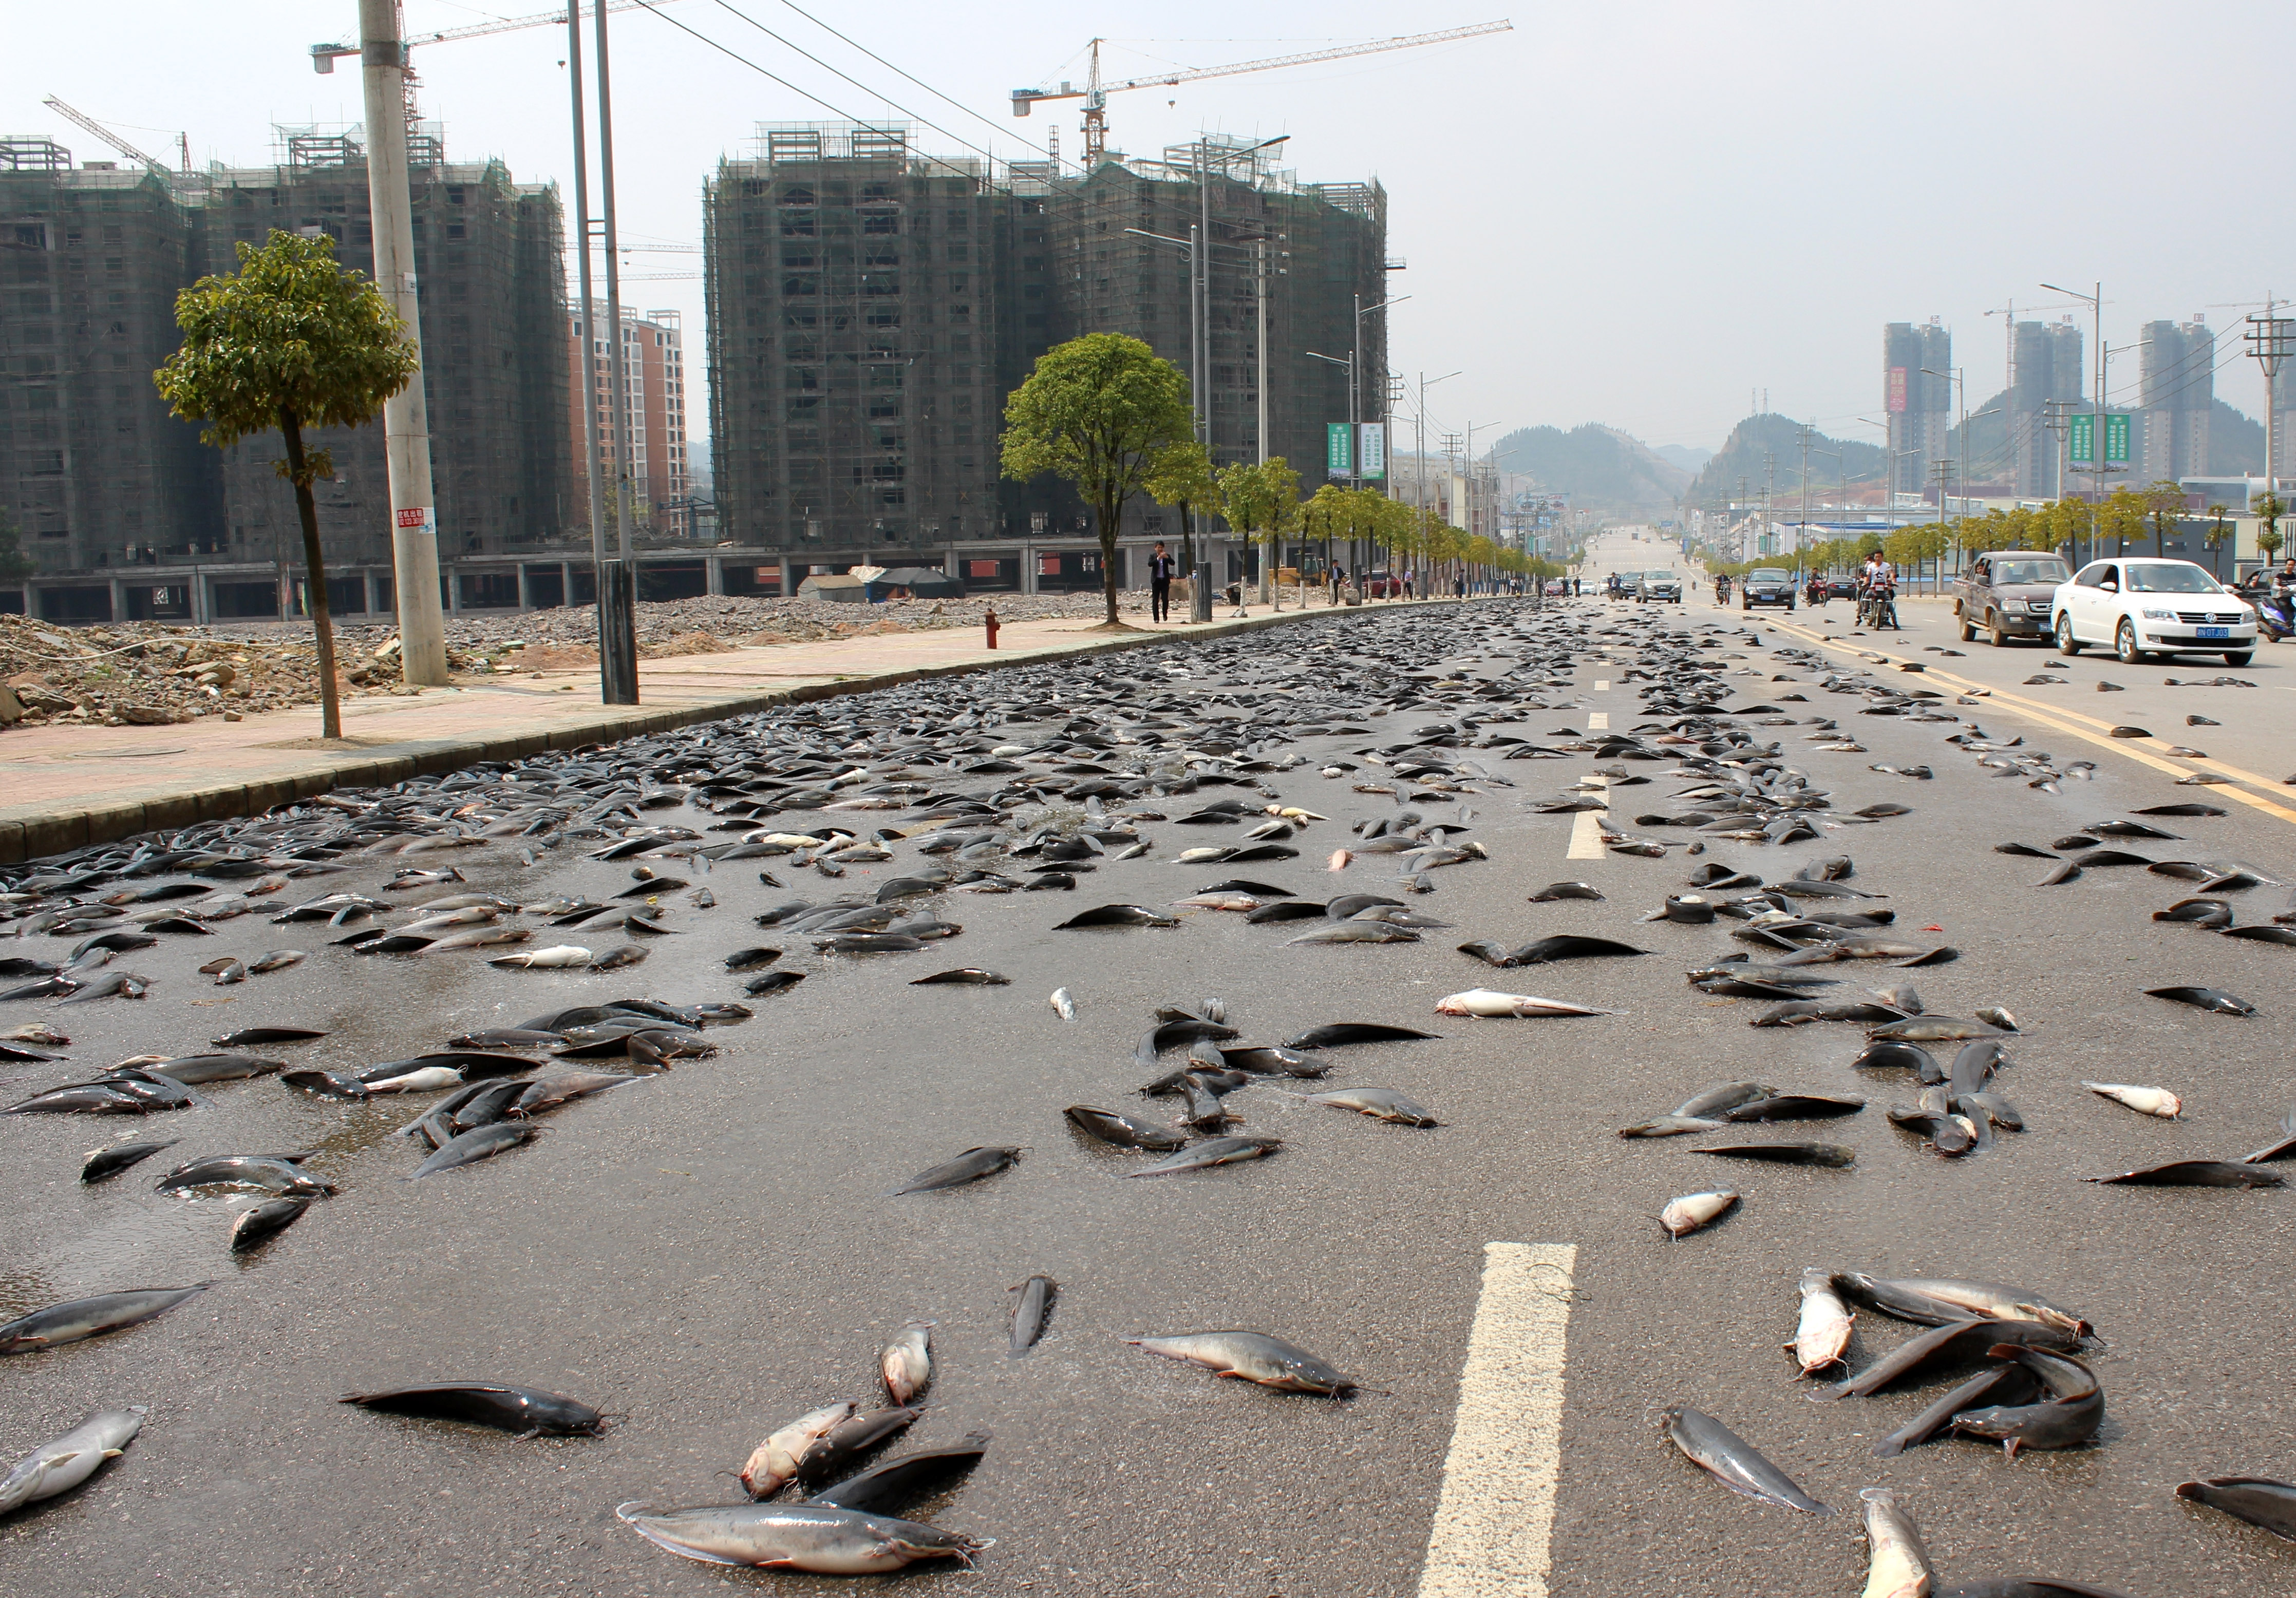 Thousands of kilograms of catfish scatter across the road in the Kaili Development Zone in Qiandongnan Miao and Dong Autonomous Prefecture on March 17, 2015, in Kaili, Guizhou province of China